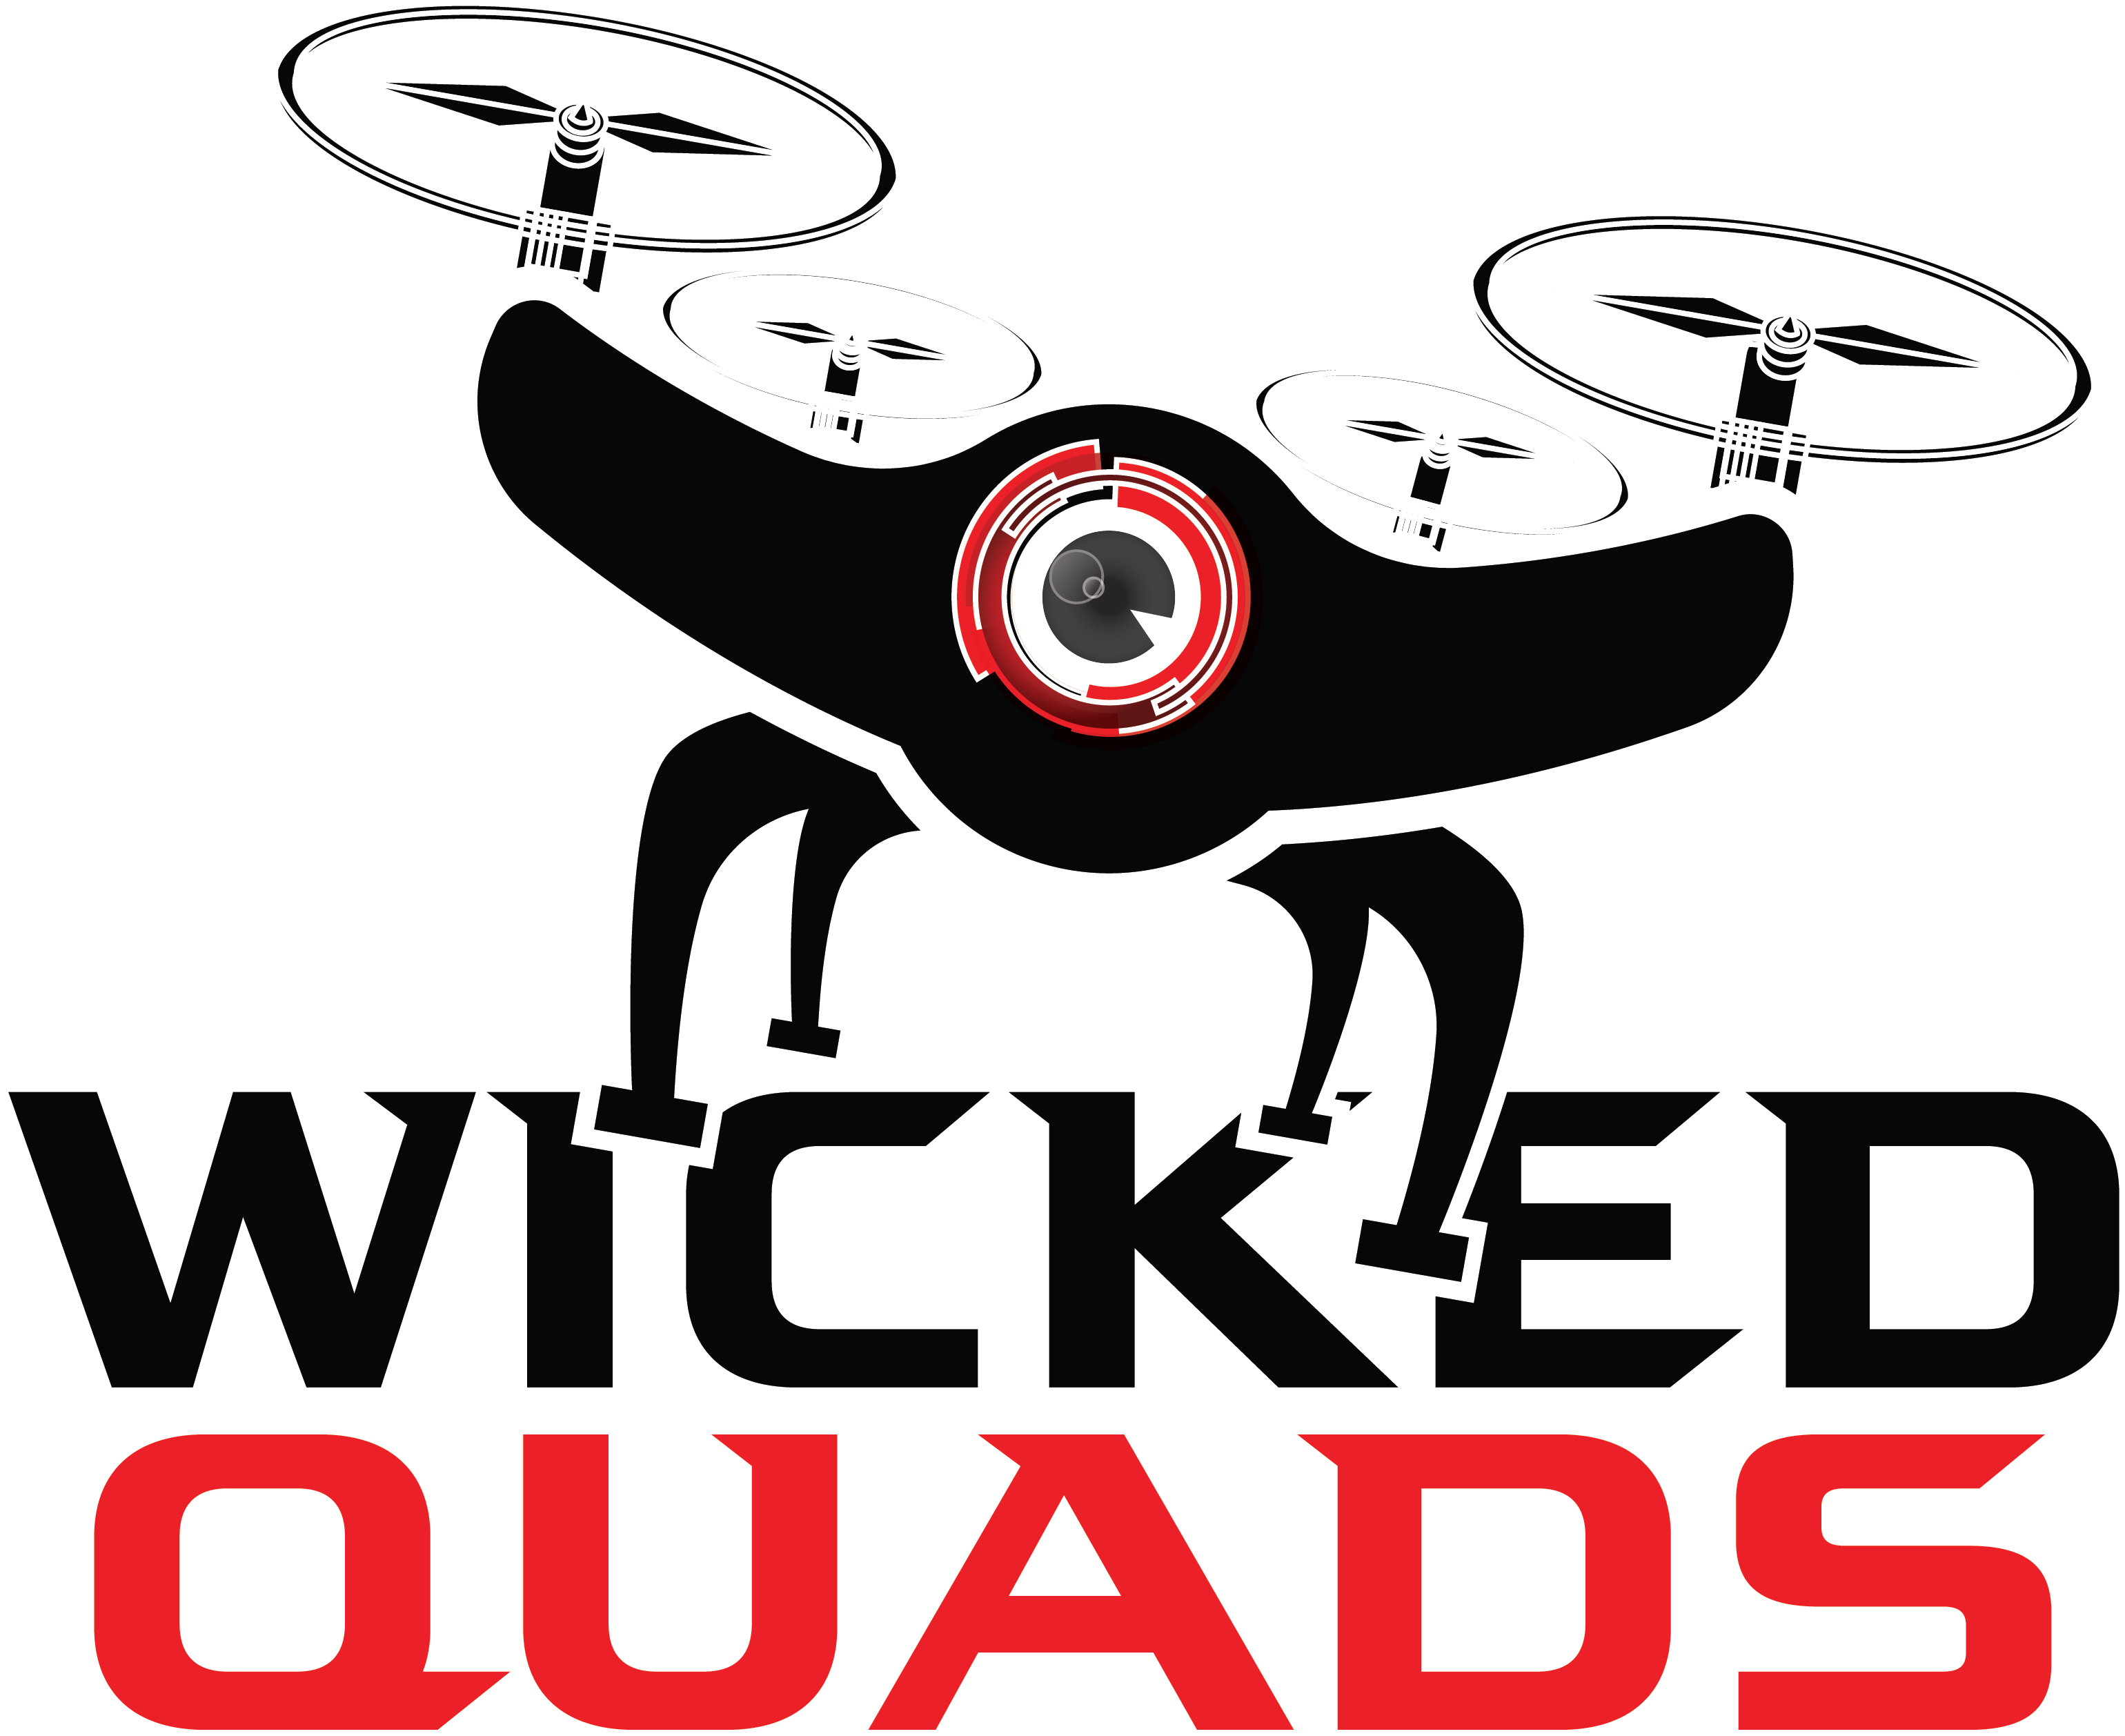 Wicked Quads – Boston's FPV Store